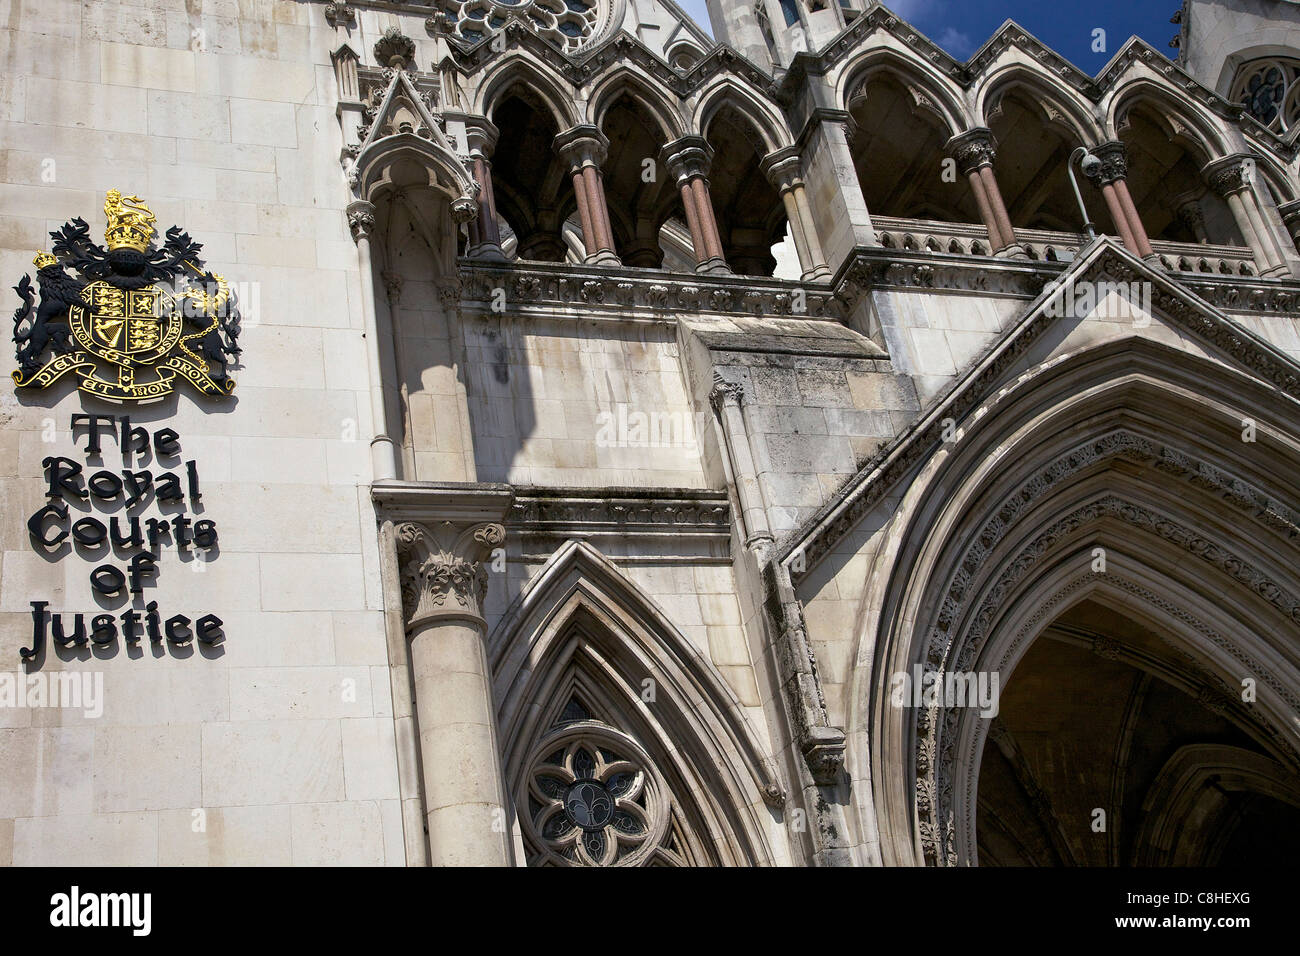 Royal Courts of Justice, City of London, England, UK, United Kingdom, GB, Great Britain, British Isles, Europe - Stock Image